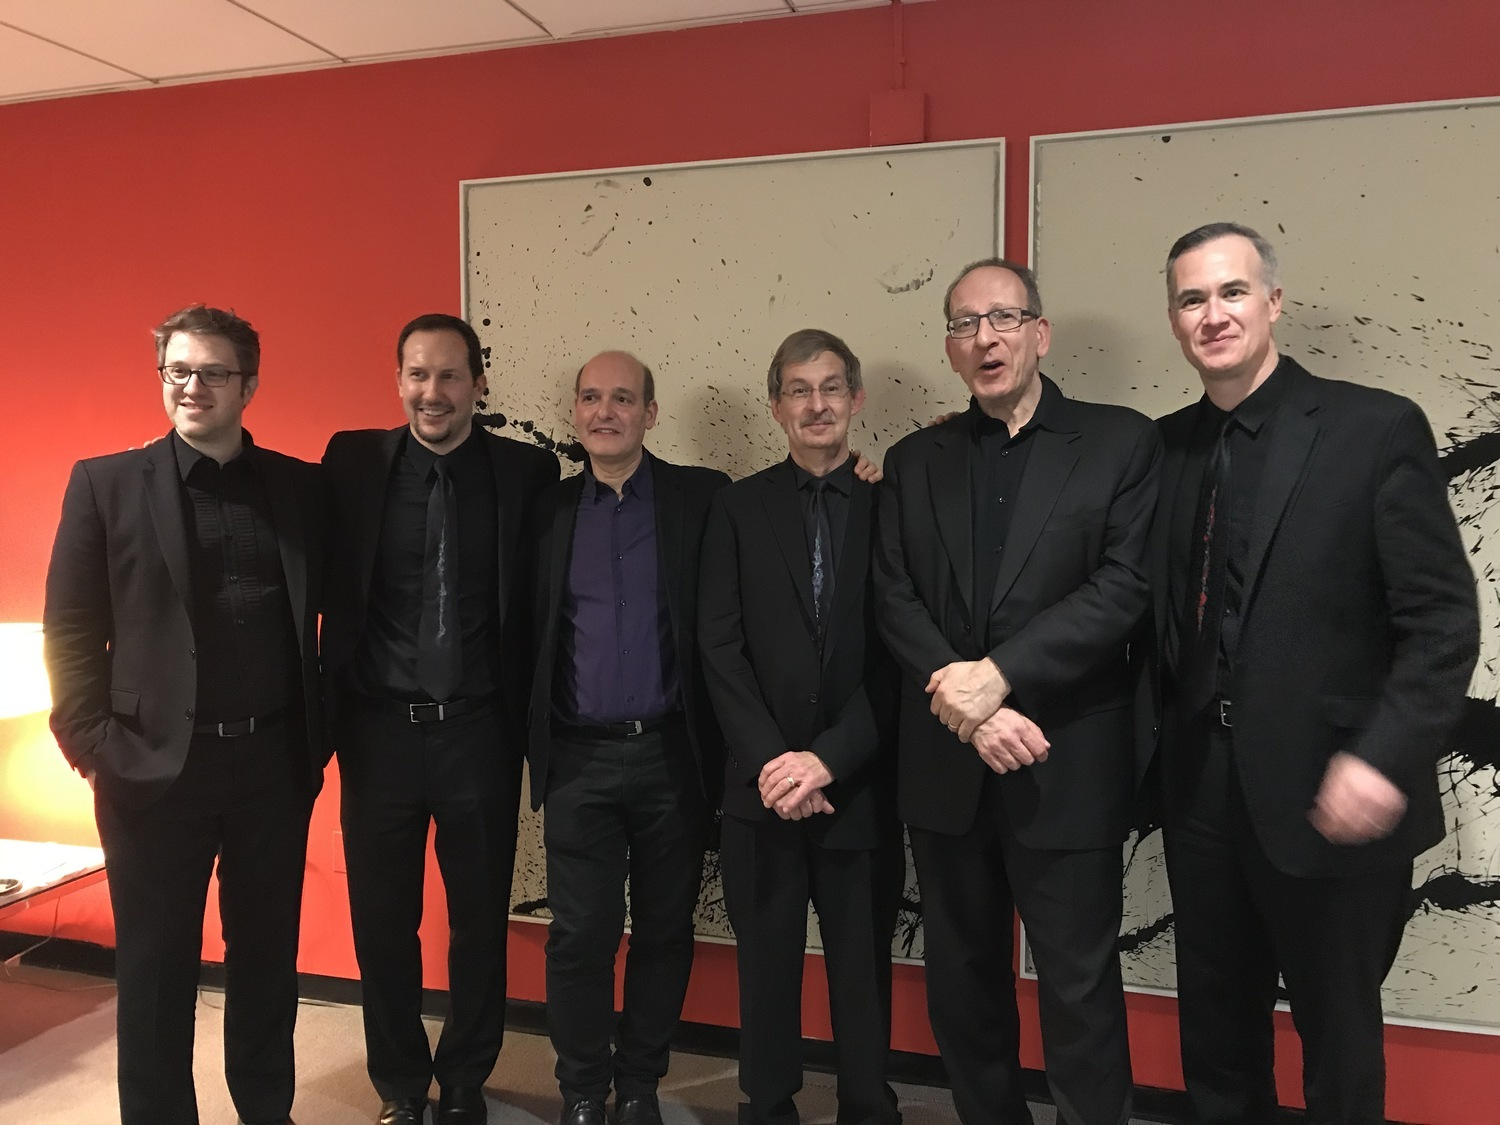 BWW Review: THE AMERICAN BRASS QUINTET at Paul Recital Hall At The Juilliard School